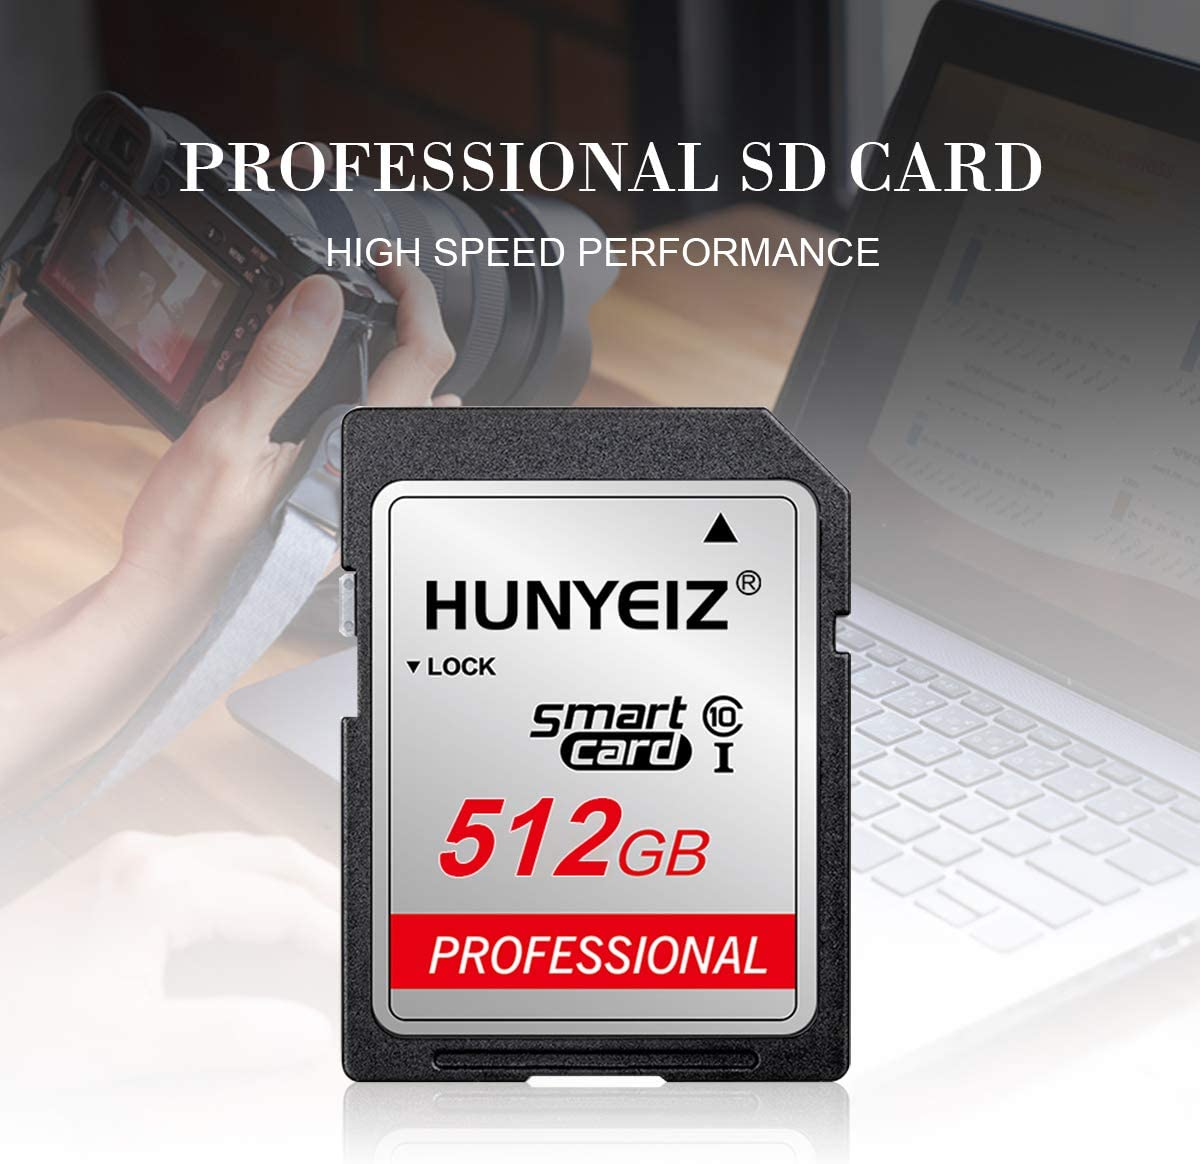 SD Card 512GB Memory Card Flash Memory Card Class 10 High Speed Security Digital SD Memory Card for Vloggers, Filmmakers, Photographers(512gb)